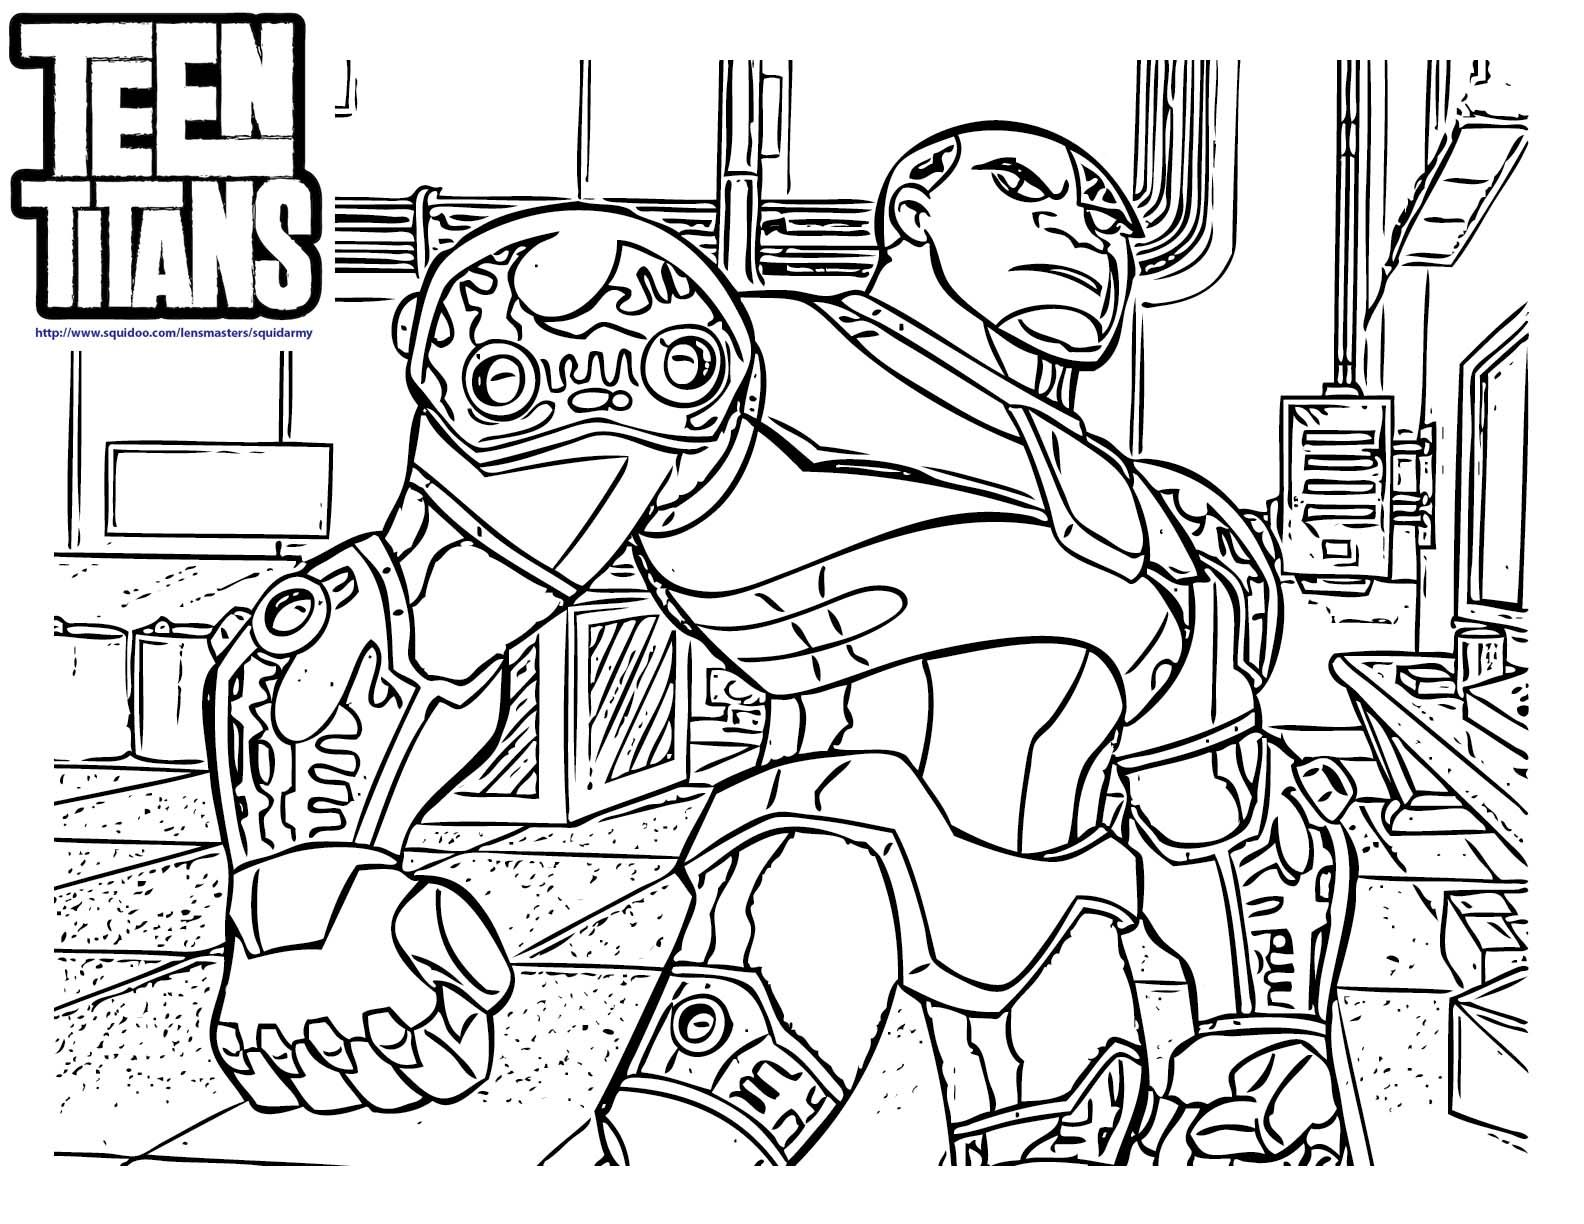 8 Pics of Teen Titans Cyborg Coloring Pages - Cyborg Teen Titans ...